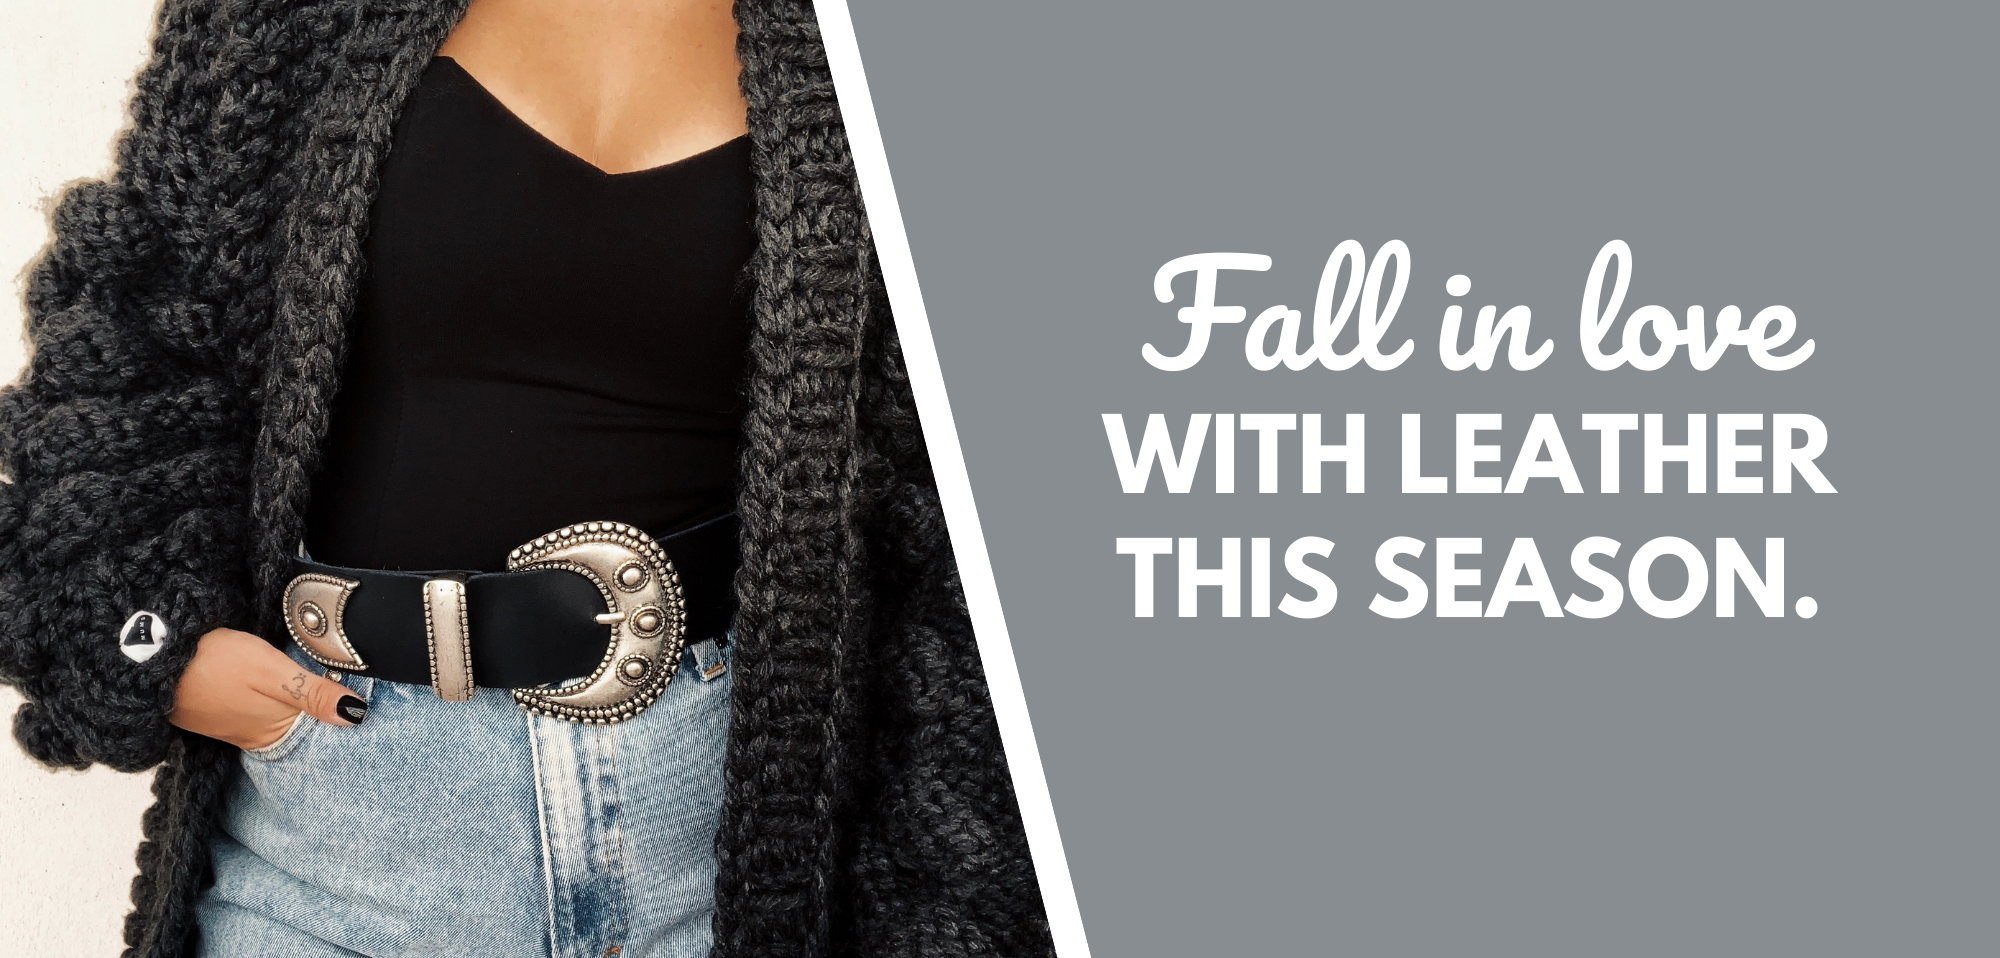 Fall in love with leather this season.